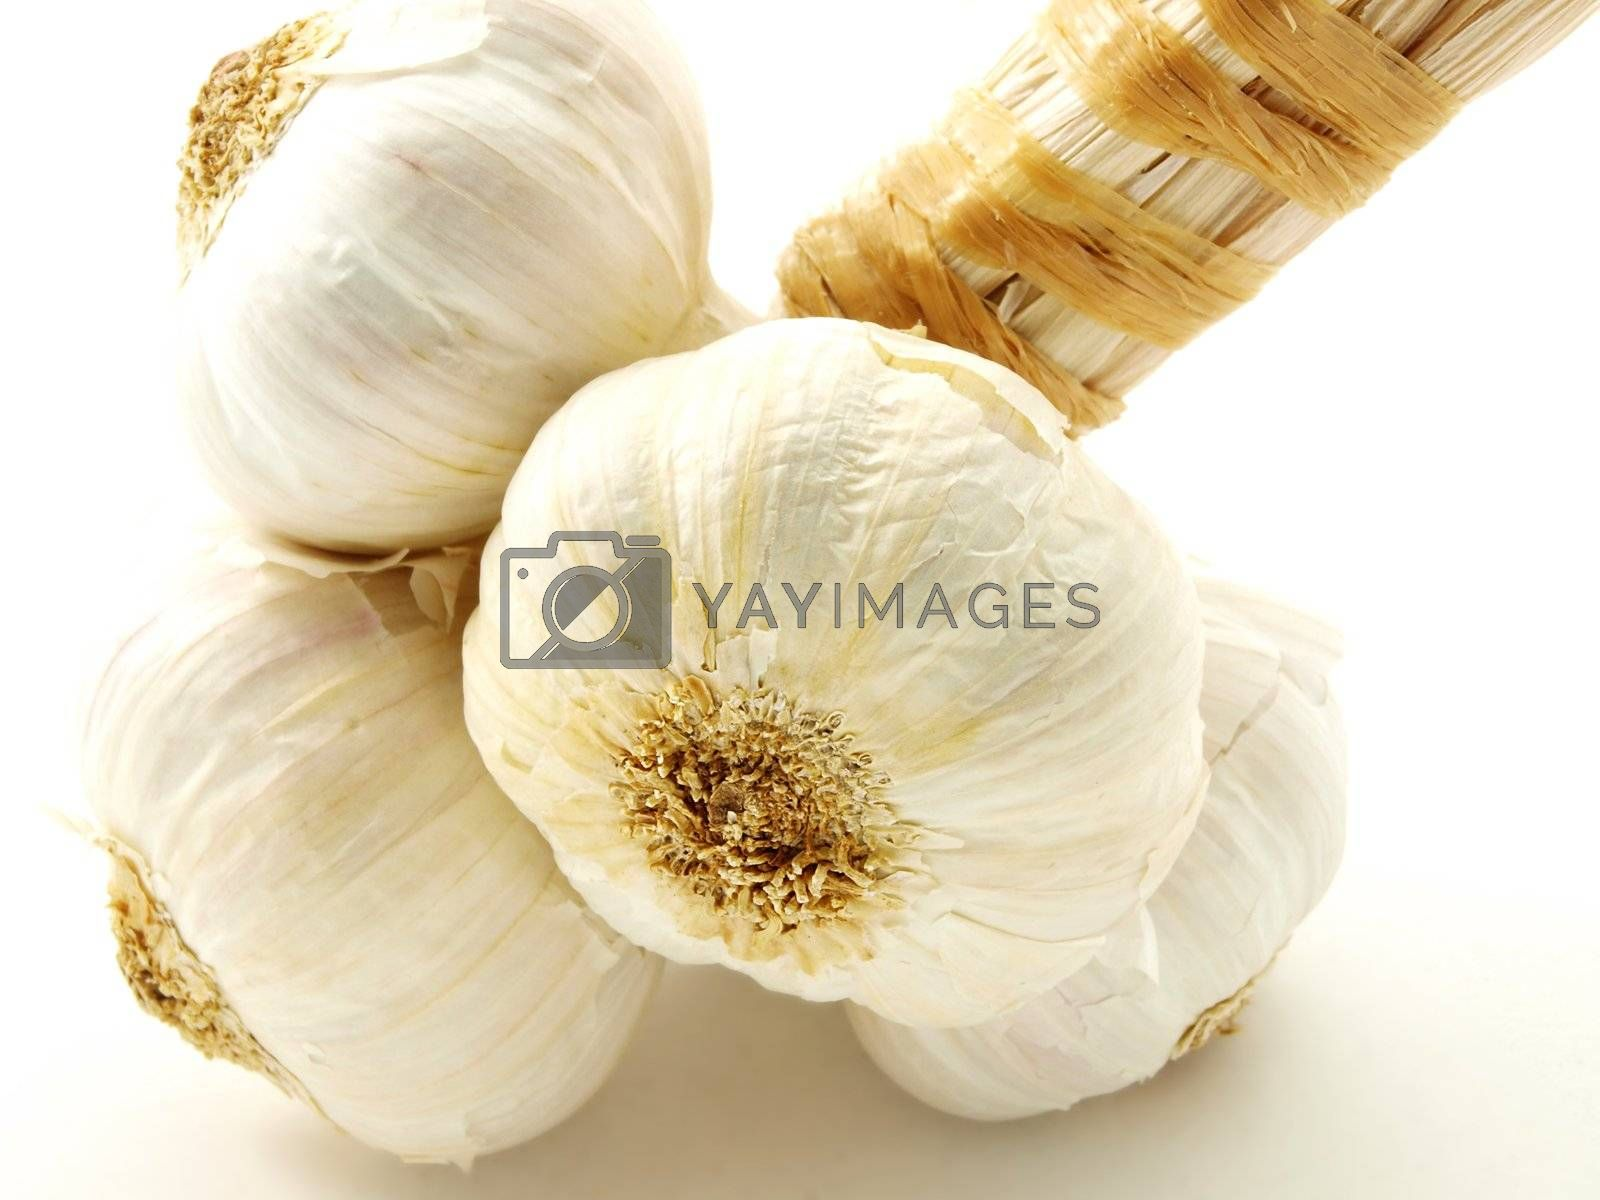 Garlic by AB_Photostudio